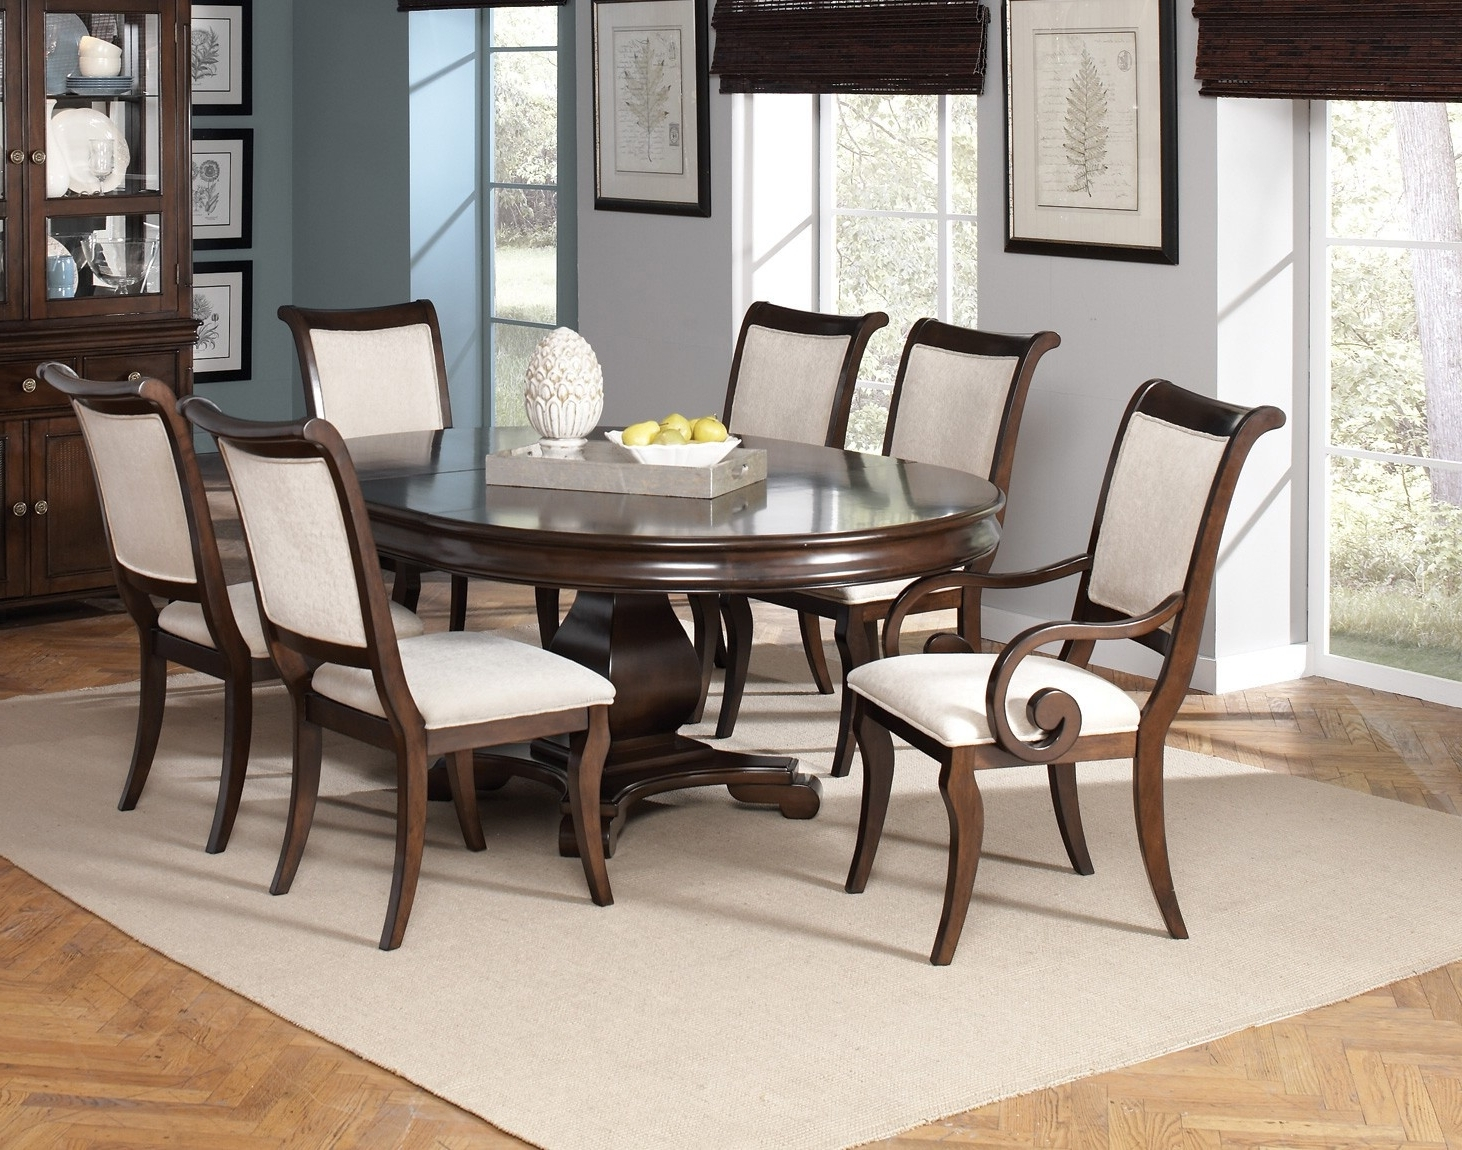 Favorite Dining Table And Chair Set Plastic Roma 8 Seater Sets With Photos For Roma Dining Tables And Chairs Sets (View 17 of 25)